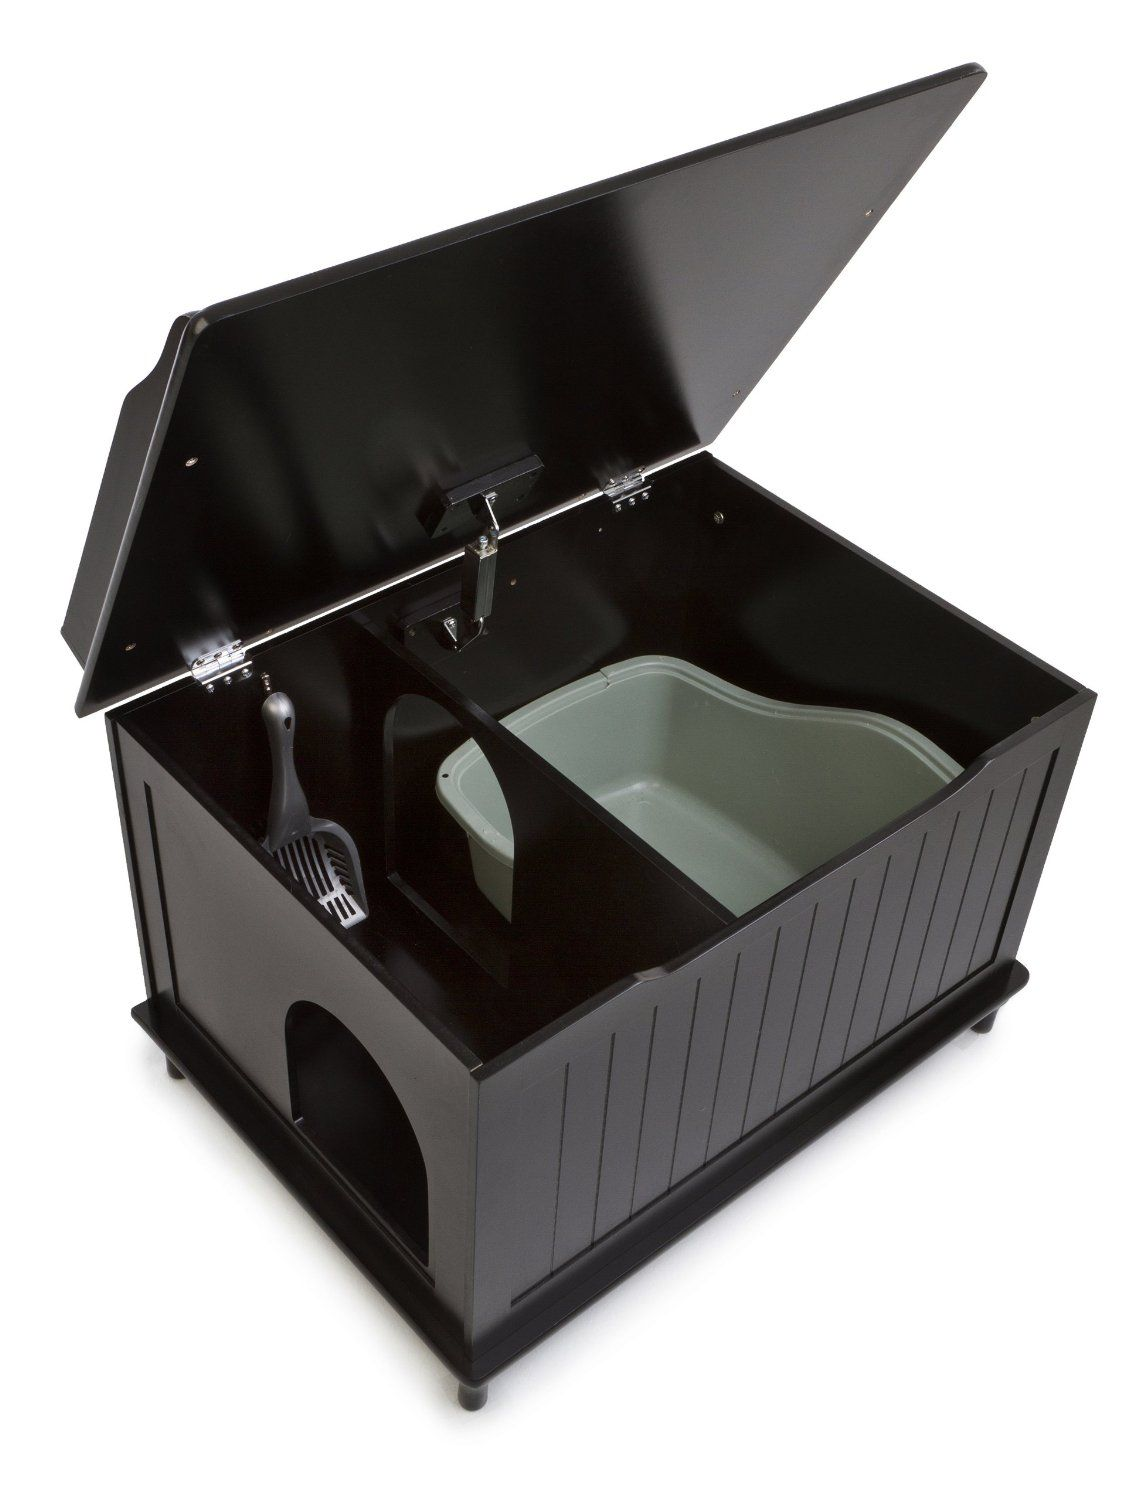 Designer catbox litter box enclosure in black pet supplies cat litterings - Modern kitty litter box ...